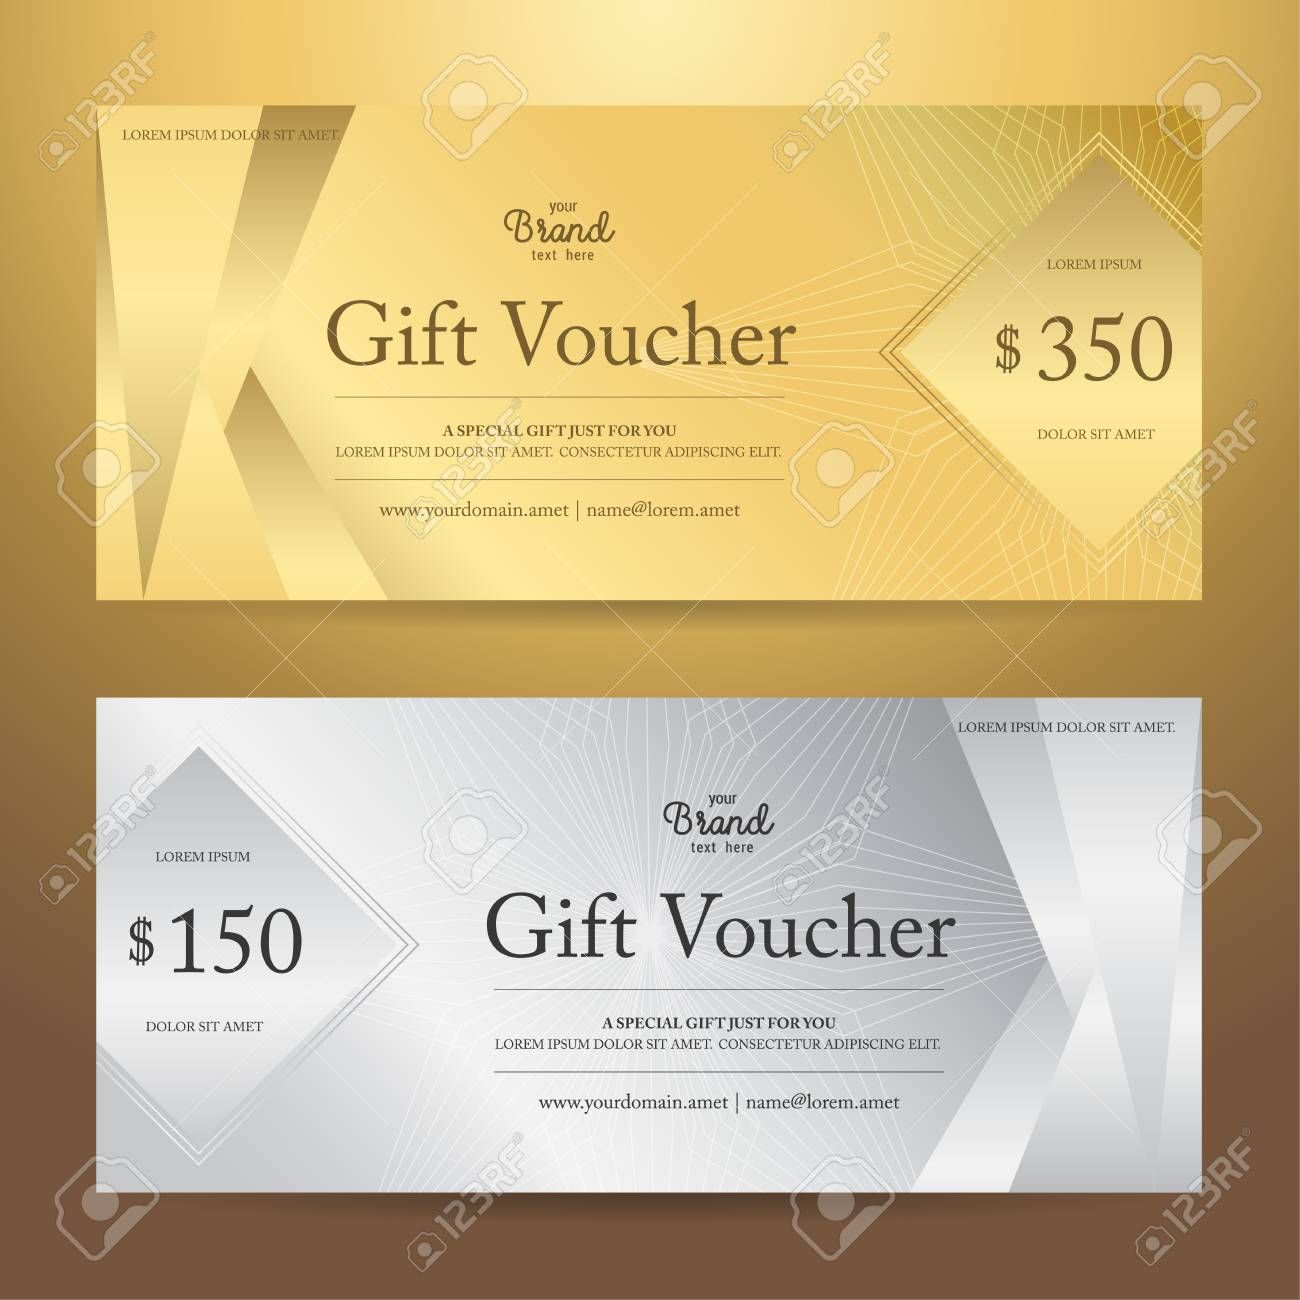 The Extraordinary Elegant Gift Voucher Or Gift Card Or Coupon Template For Discount Intended For Ele Gift Card Template Coupon Template Certificate Templates